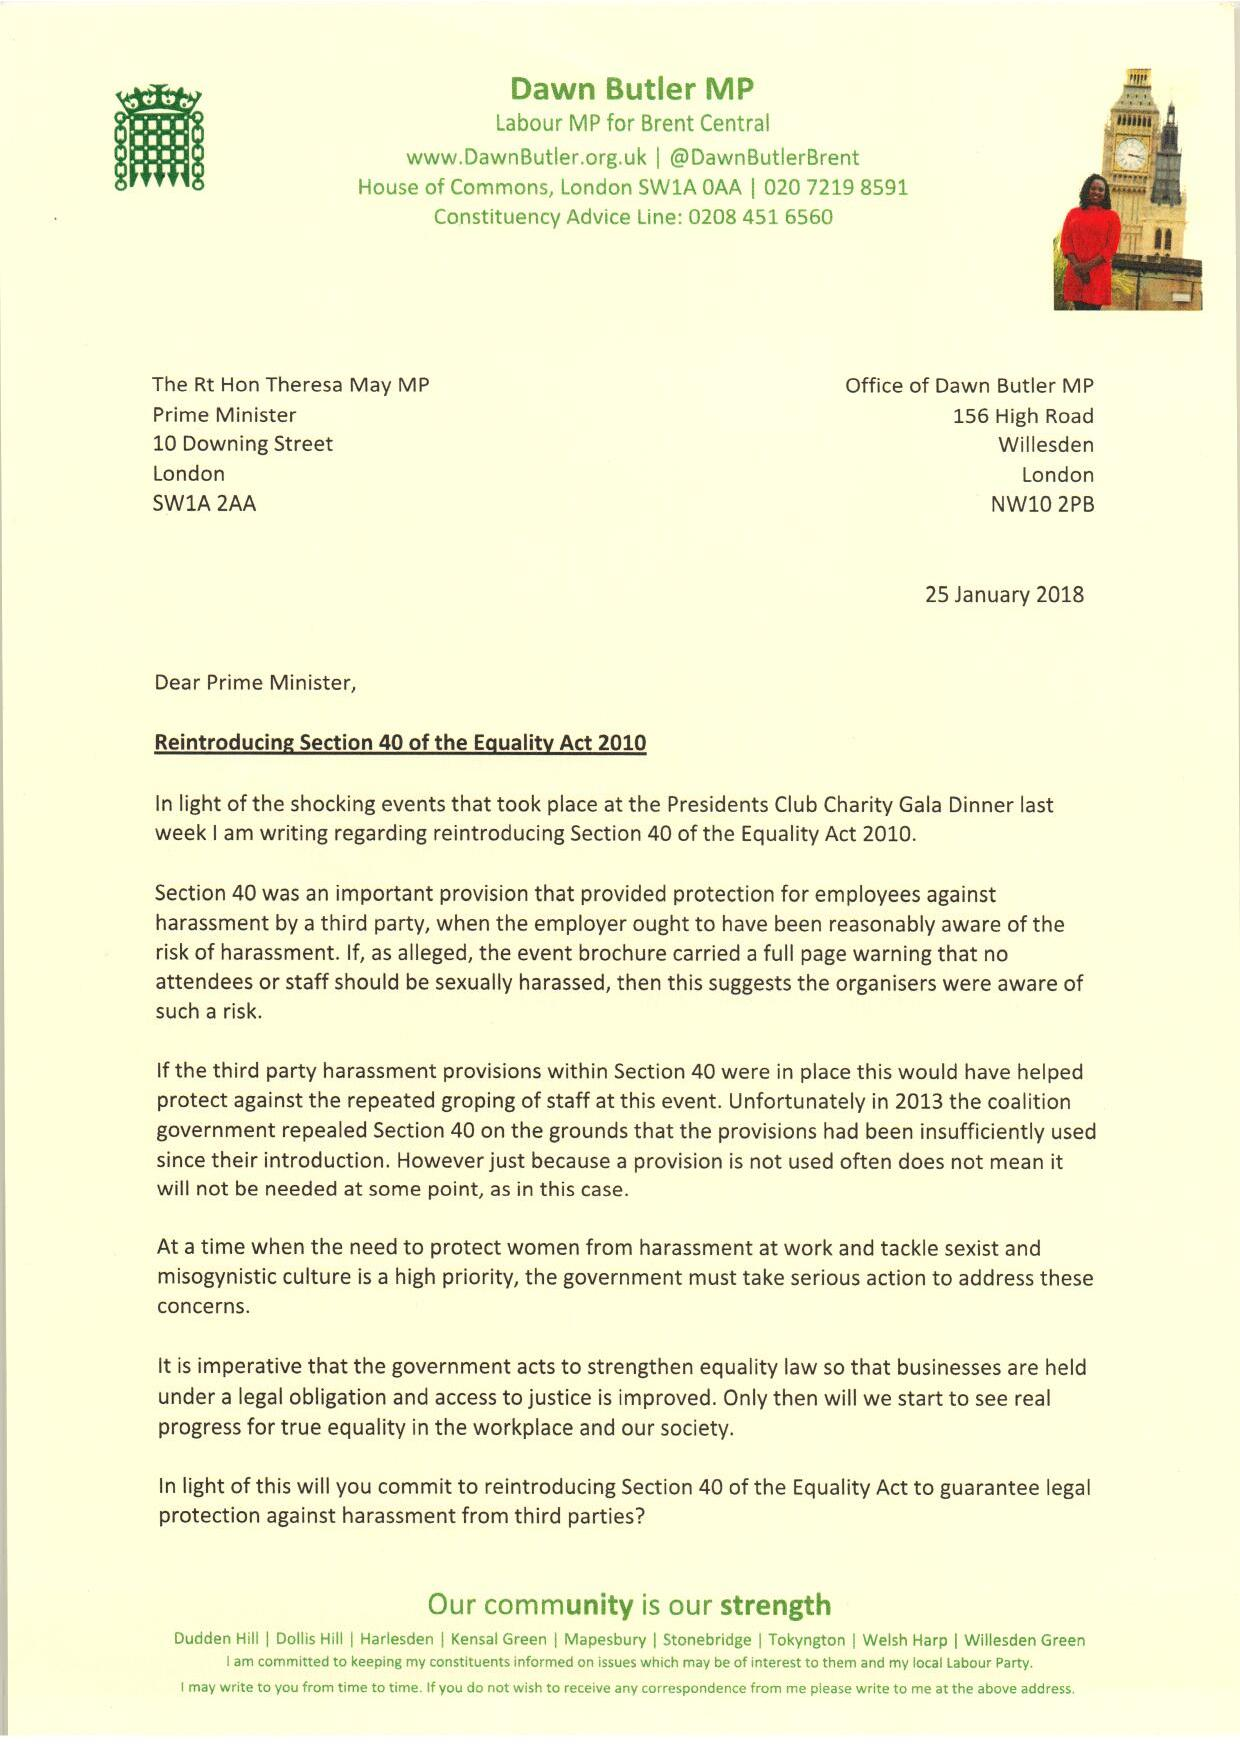 Letter_to_the_Prime_Minister_-_Presidents_Club_250118-page-001_(2).jpg